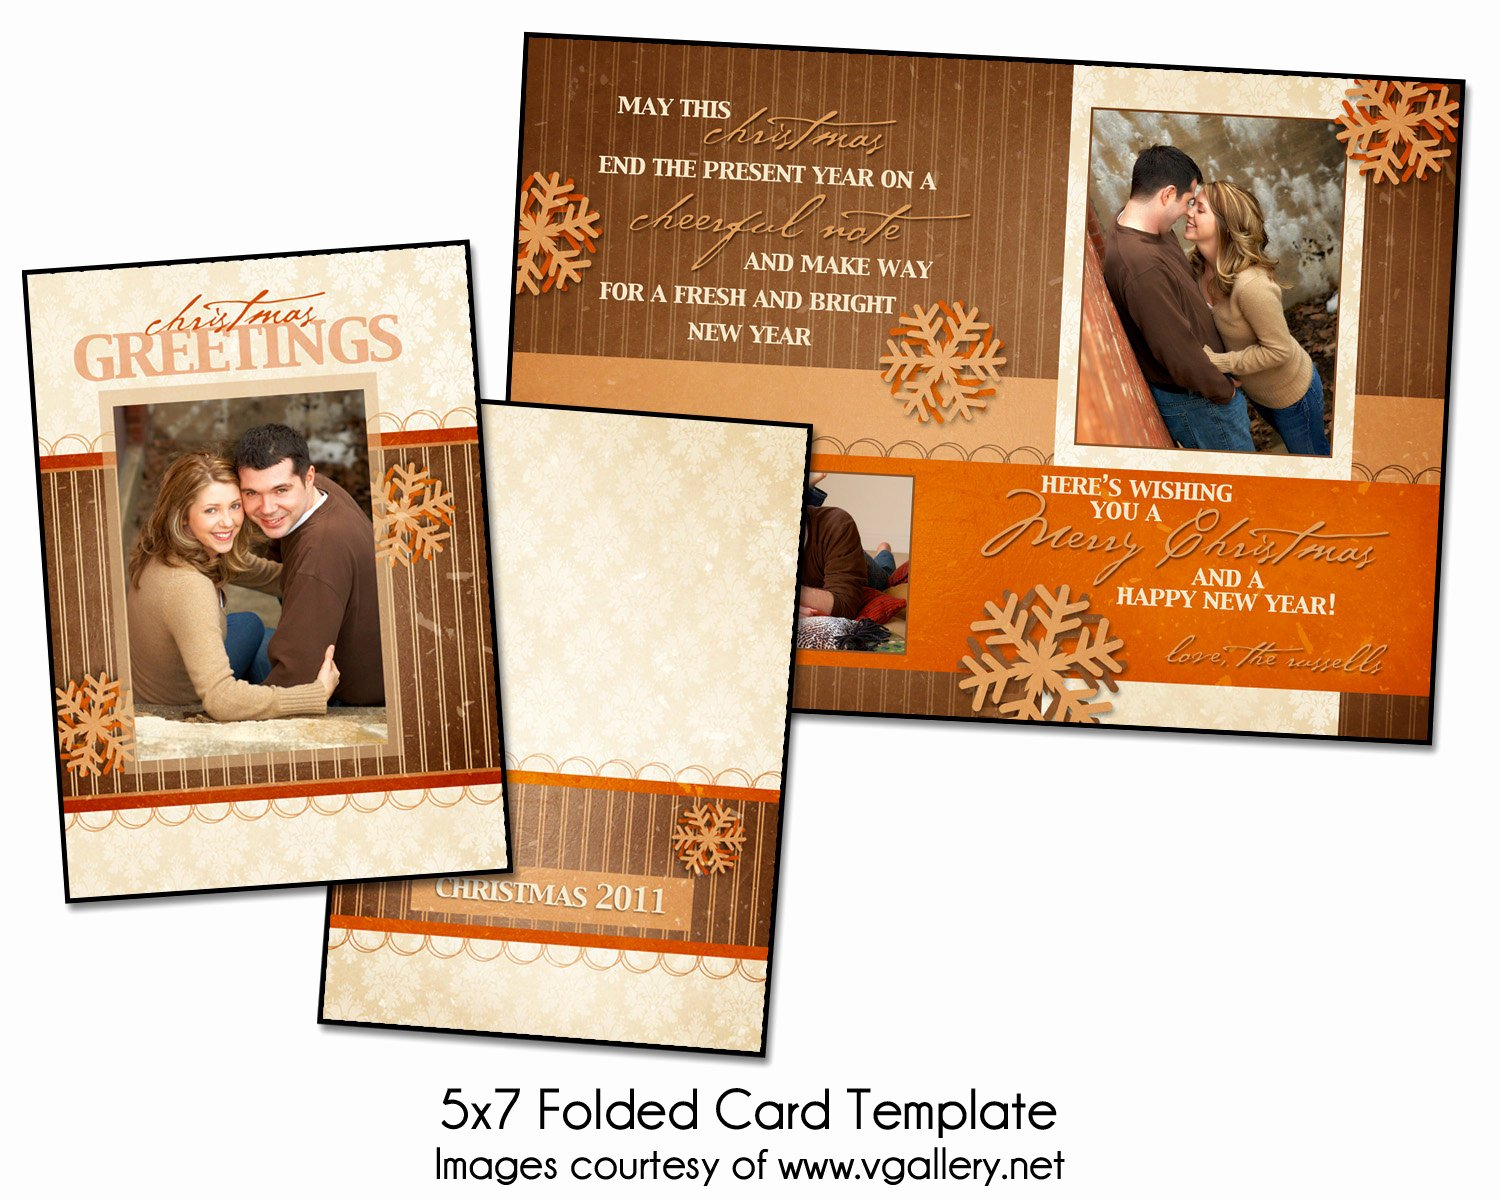 5x7 Postcard Mailing Template Luxury Christmas Card Template Christmas Greetings Folded 5x7